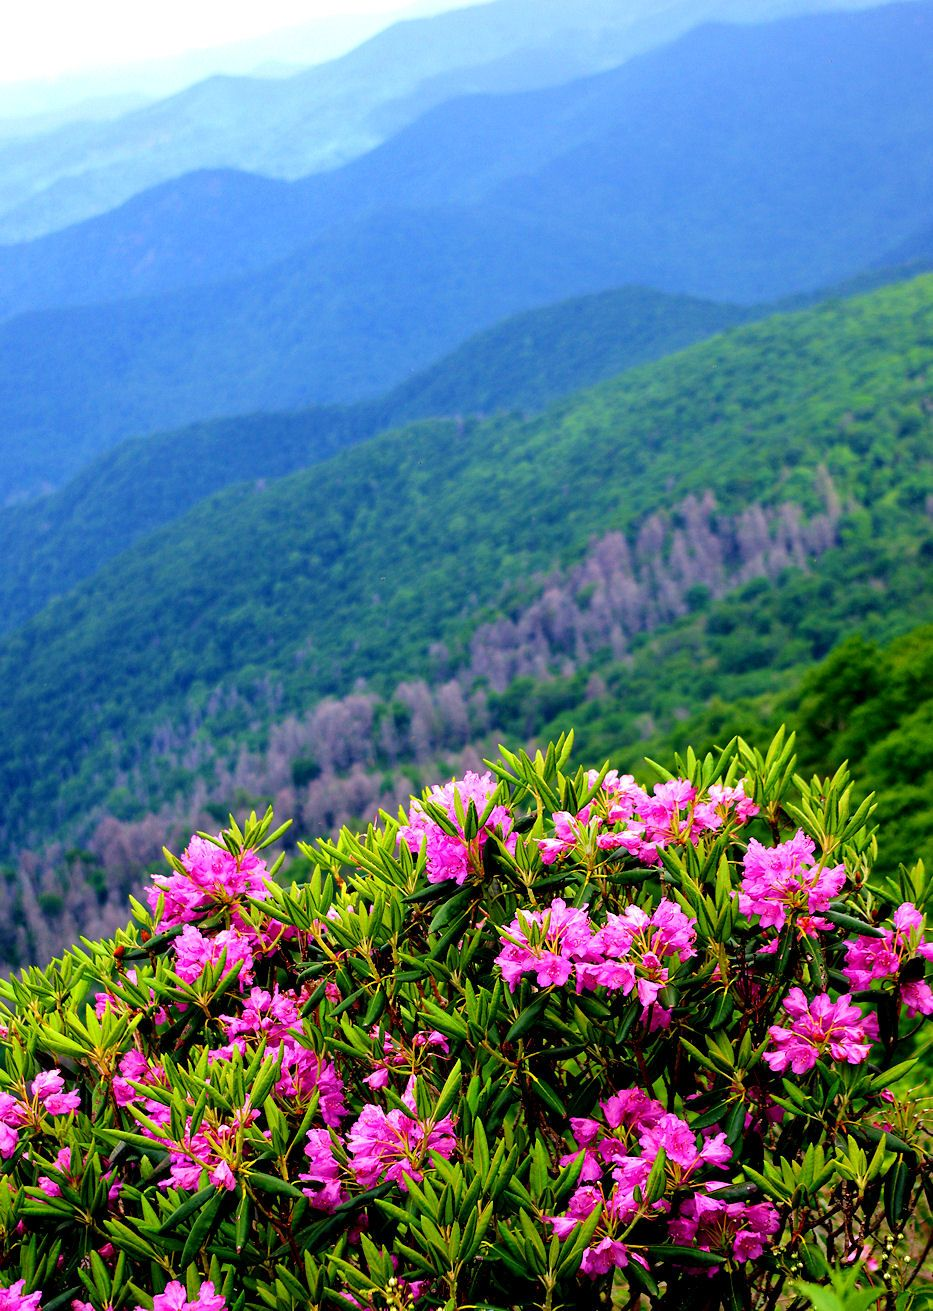 Rhododendron blooming along the Blue Ridge Parkway in North Carolina ...